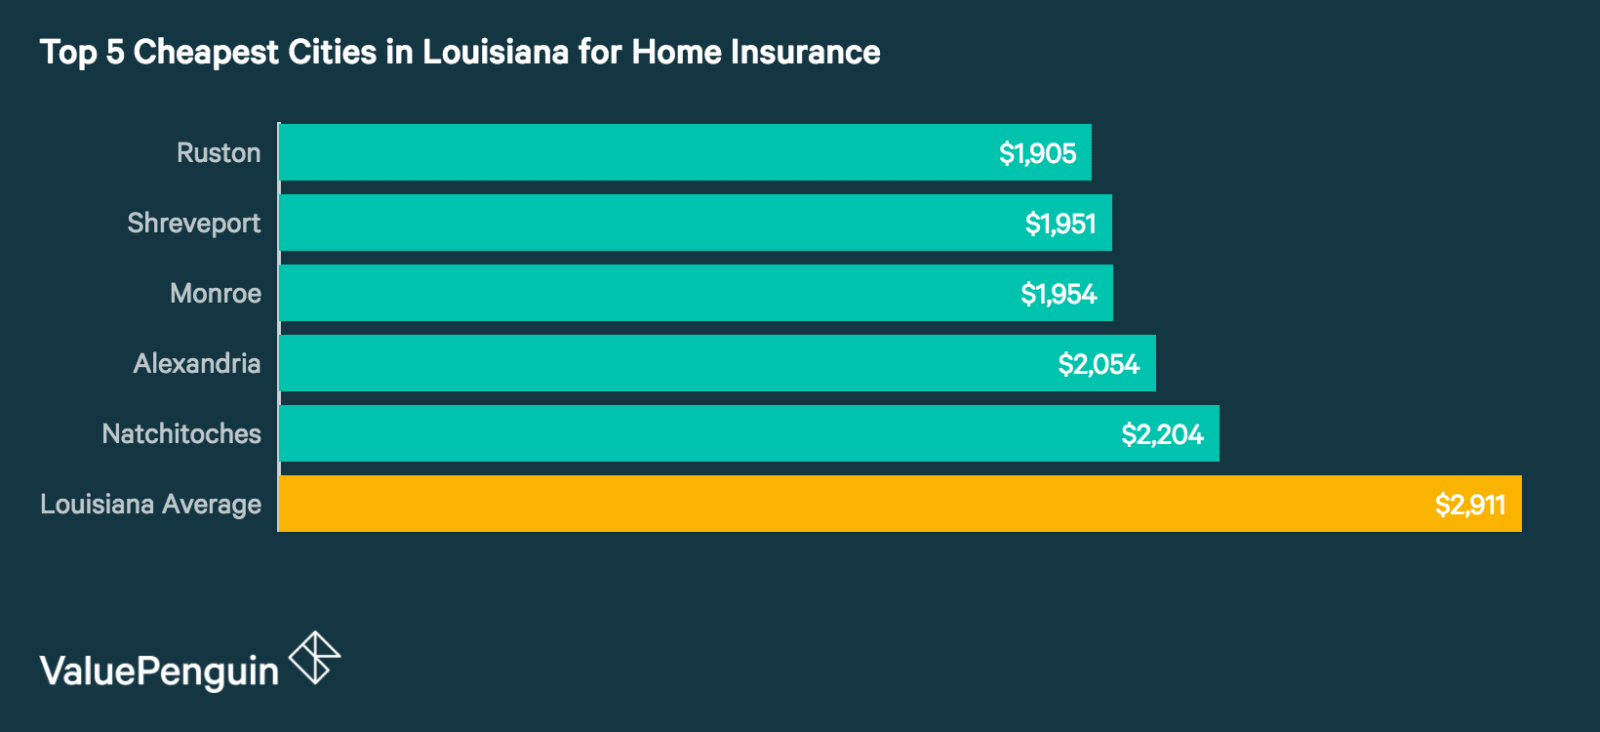 Top 5 Cheapest Cities in Louisiana for Homeowners Insurance